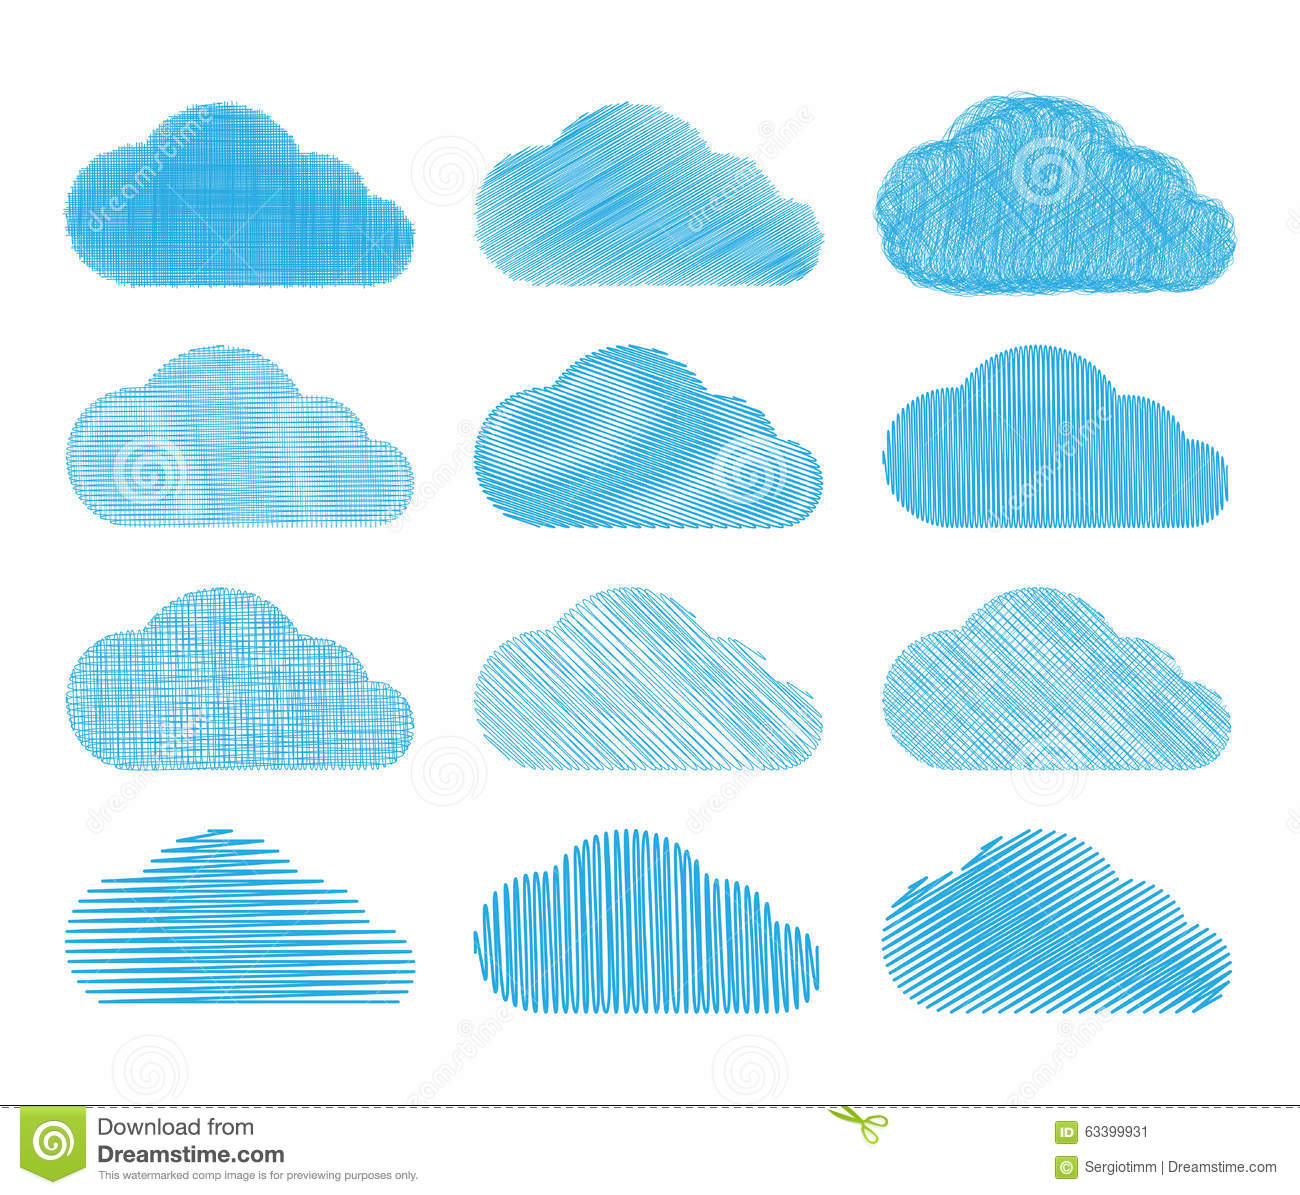 Set Of Vector Clouds With Different Types Of Pencil Shading Stock Vector Illustration Of Dialog Texture 63399931